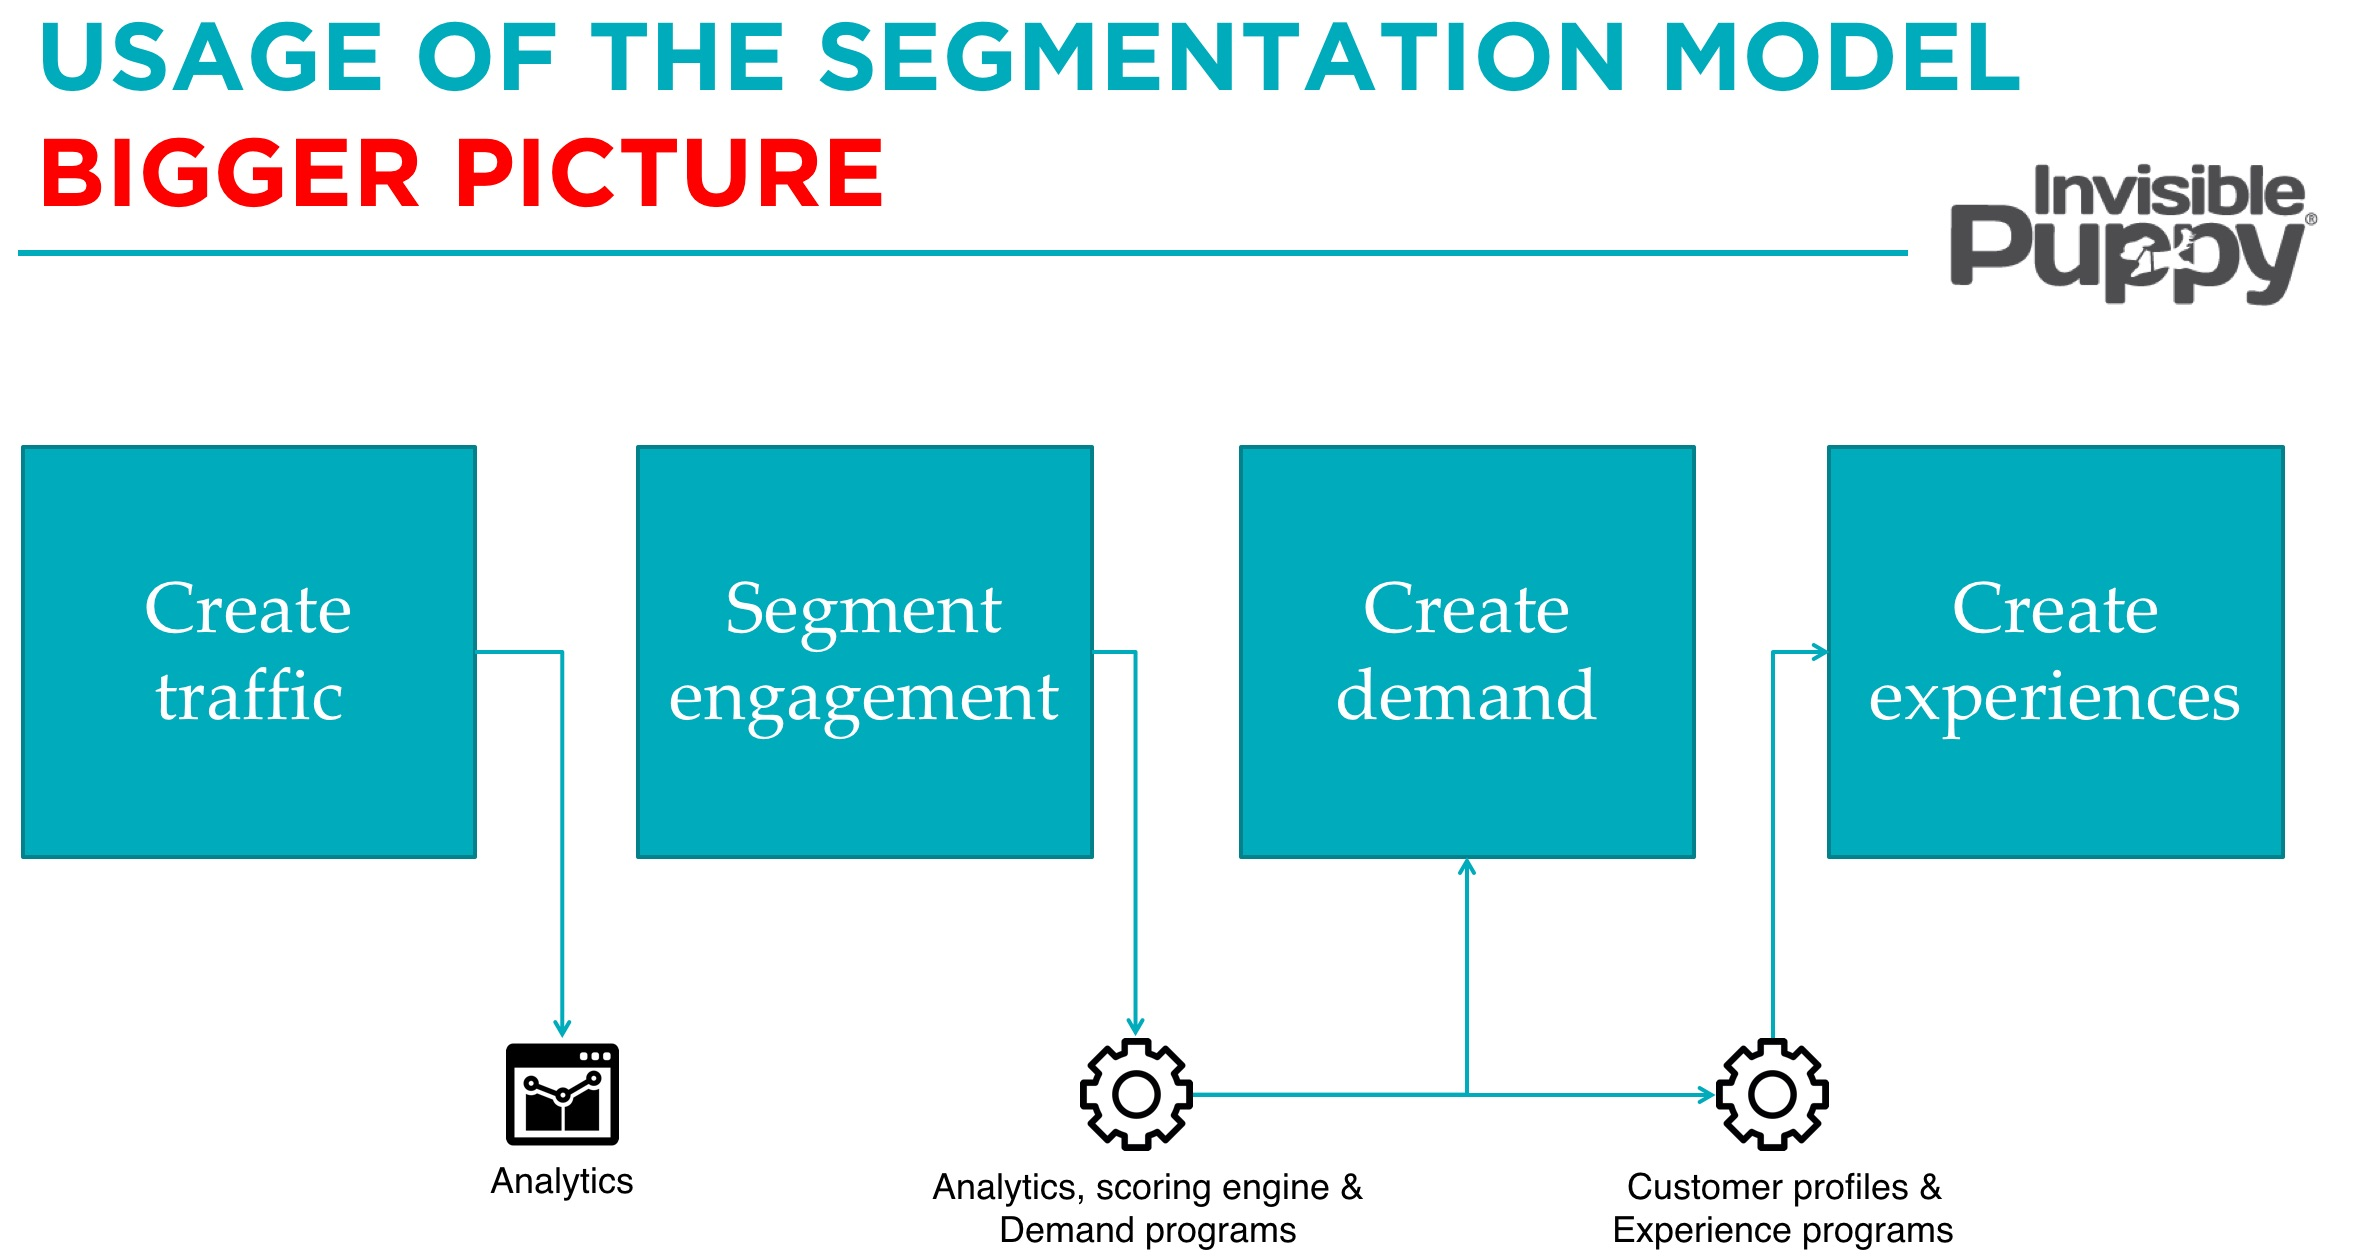 segmentation_model_how_to_personalization